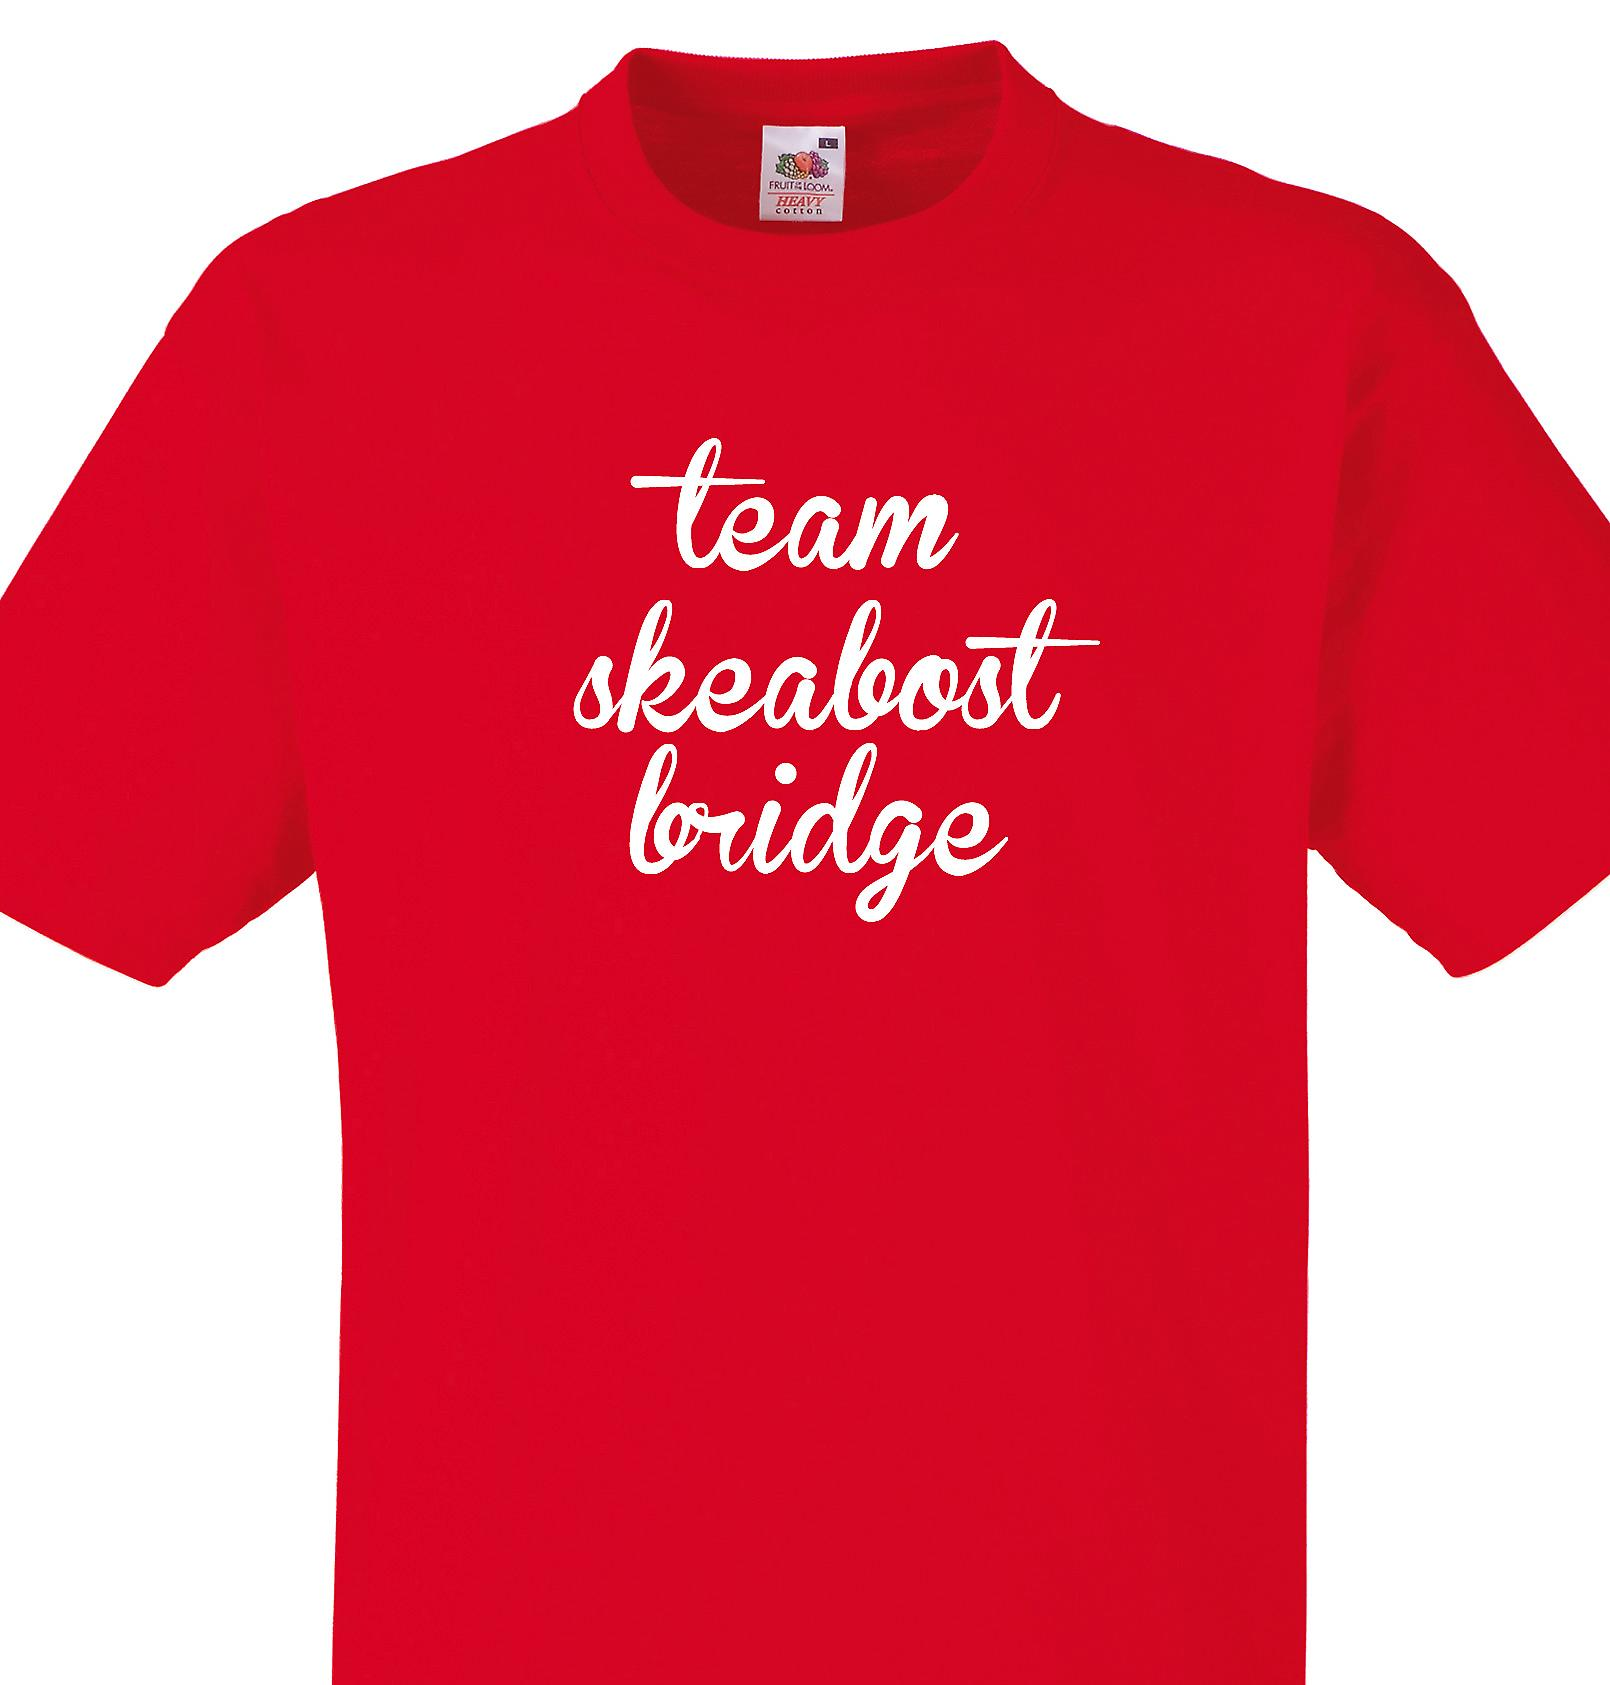 Team Skeabost bridge Red T shirt